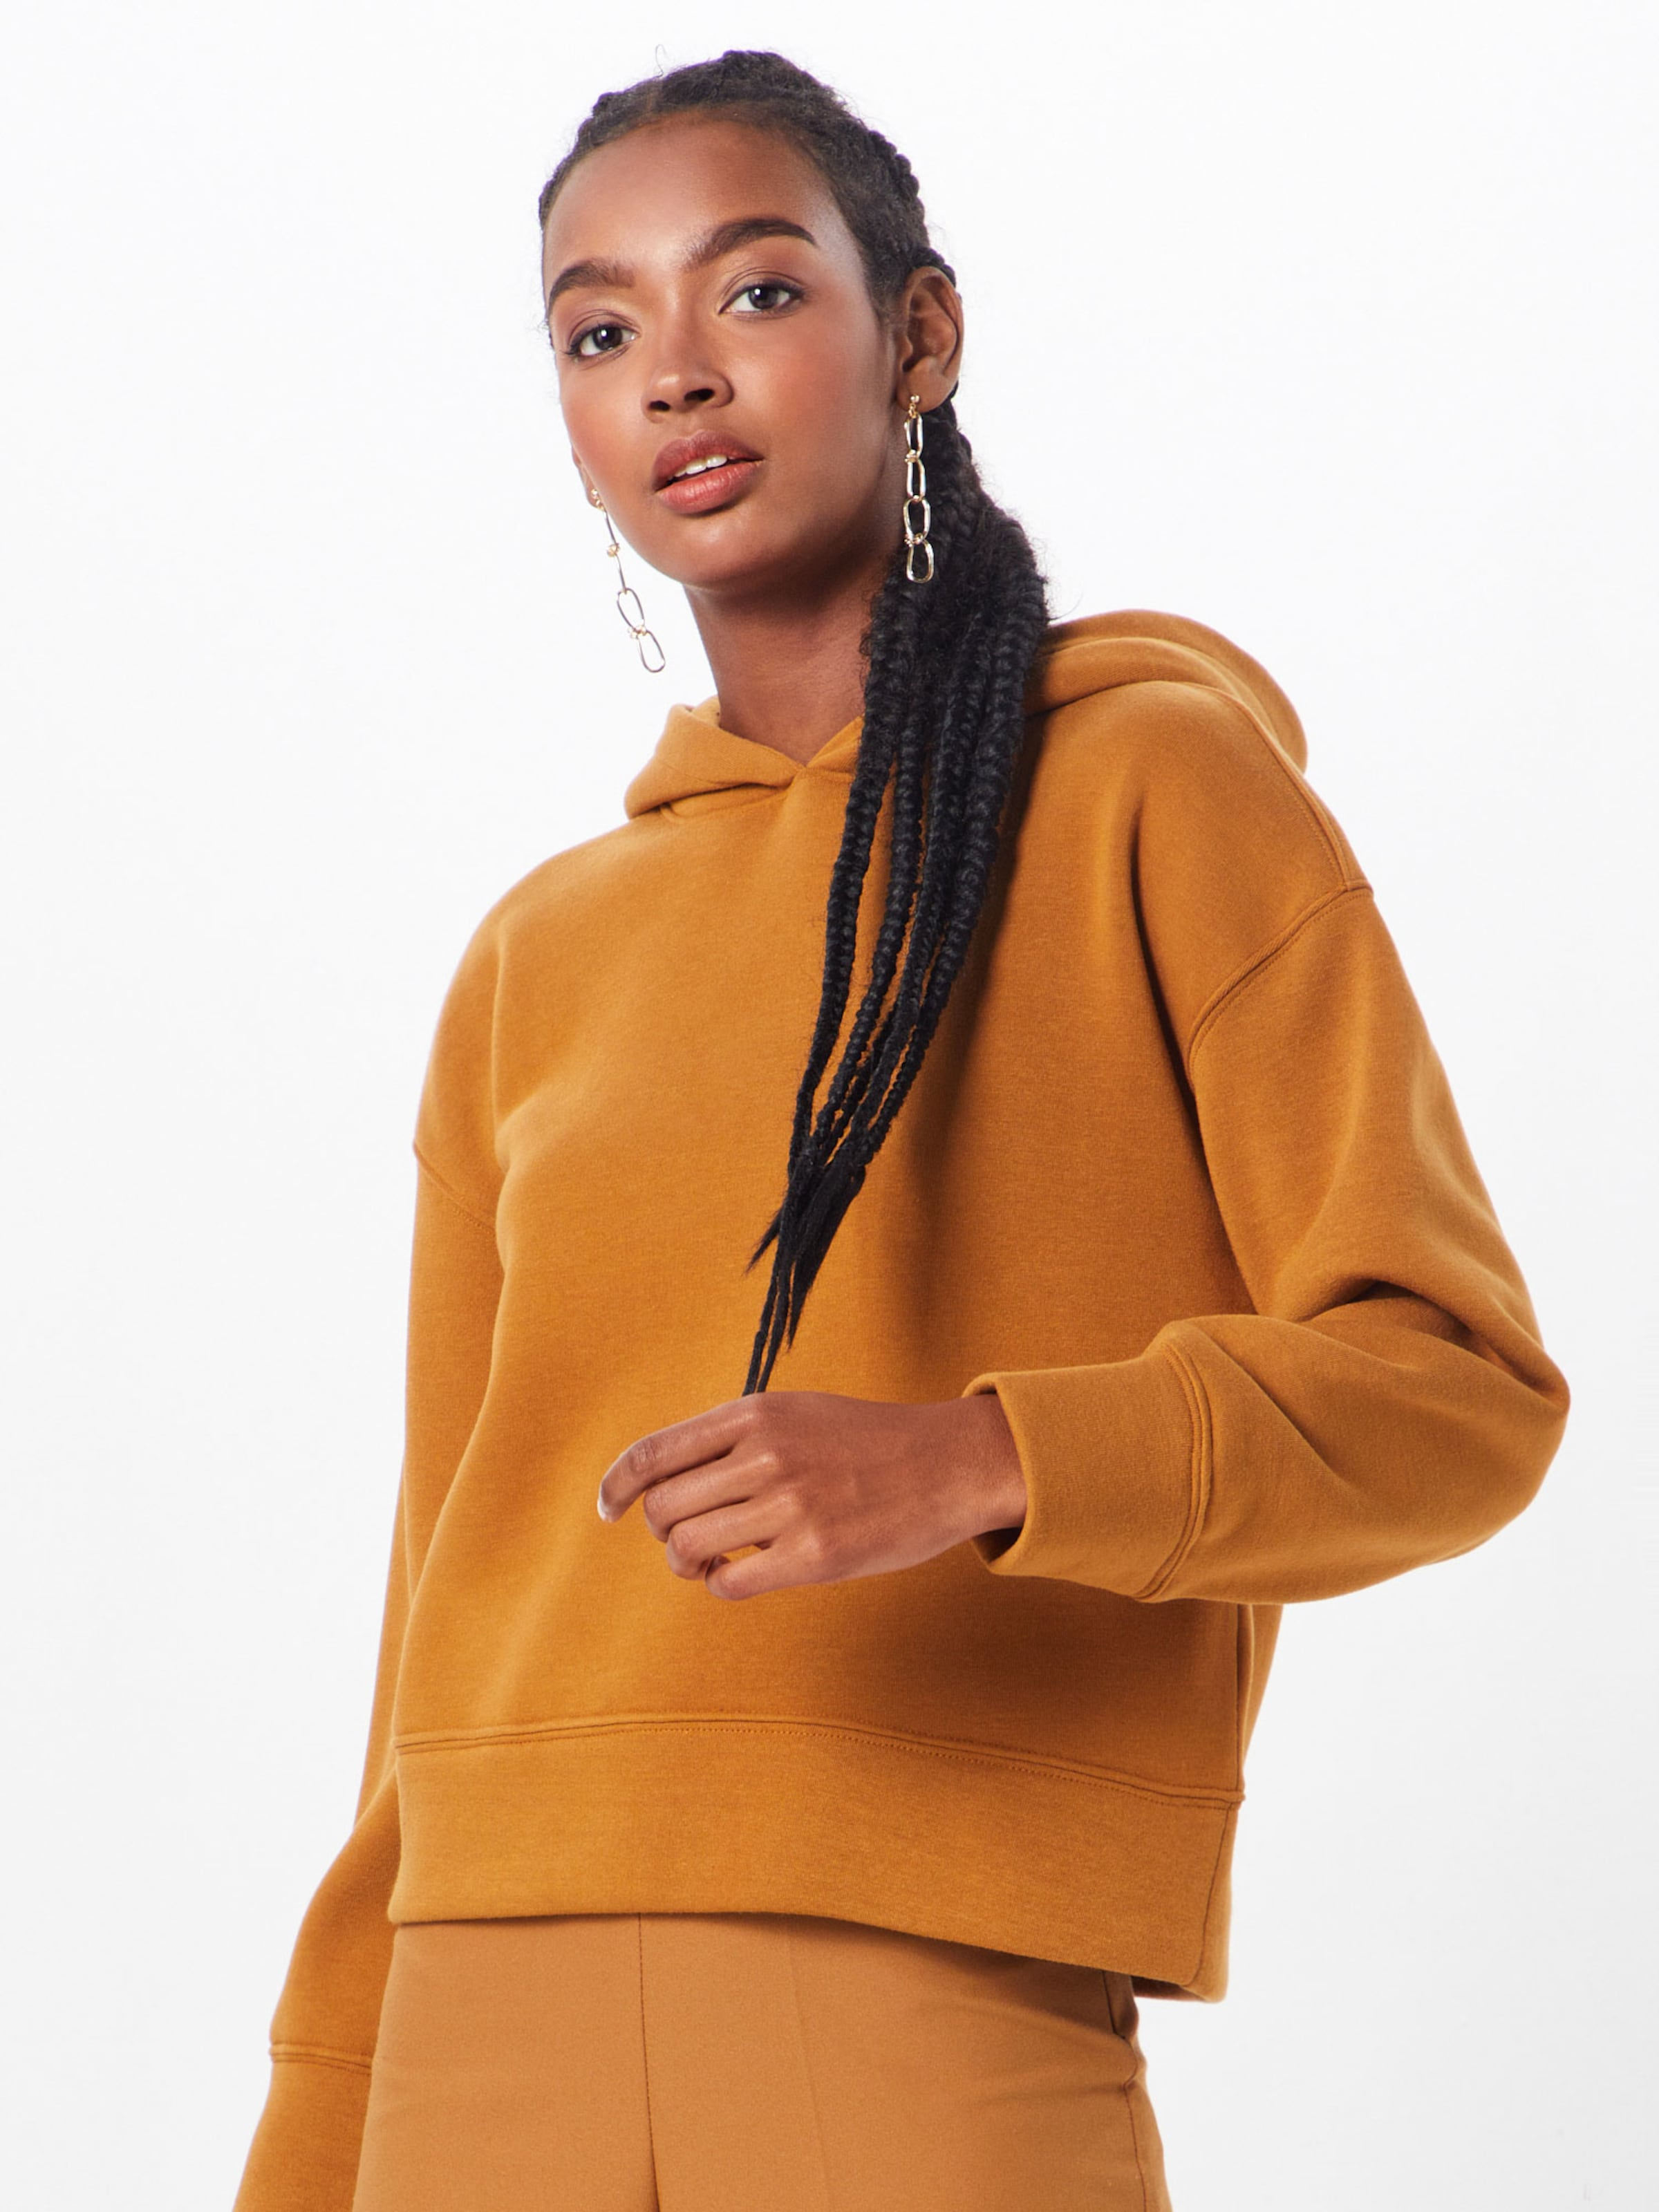 'masya' En Noisy shirt May Bronze Sweat vnwPmN0y8O